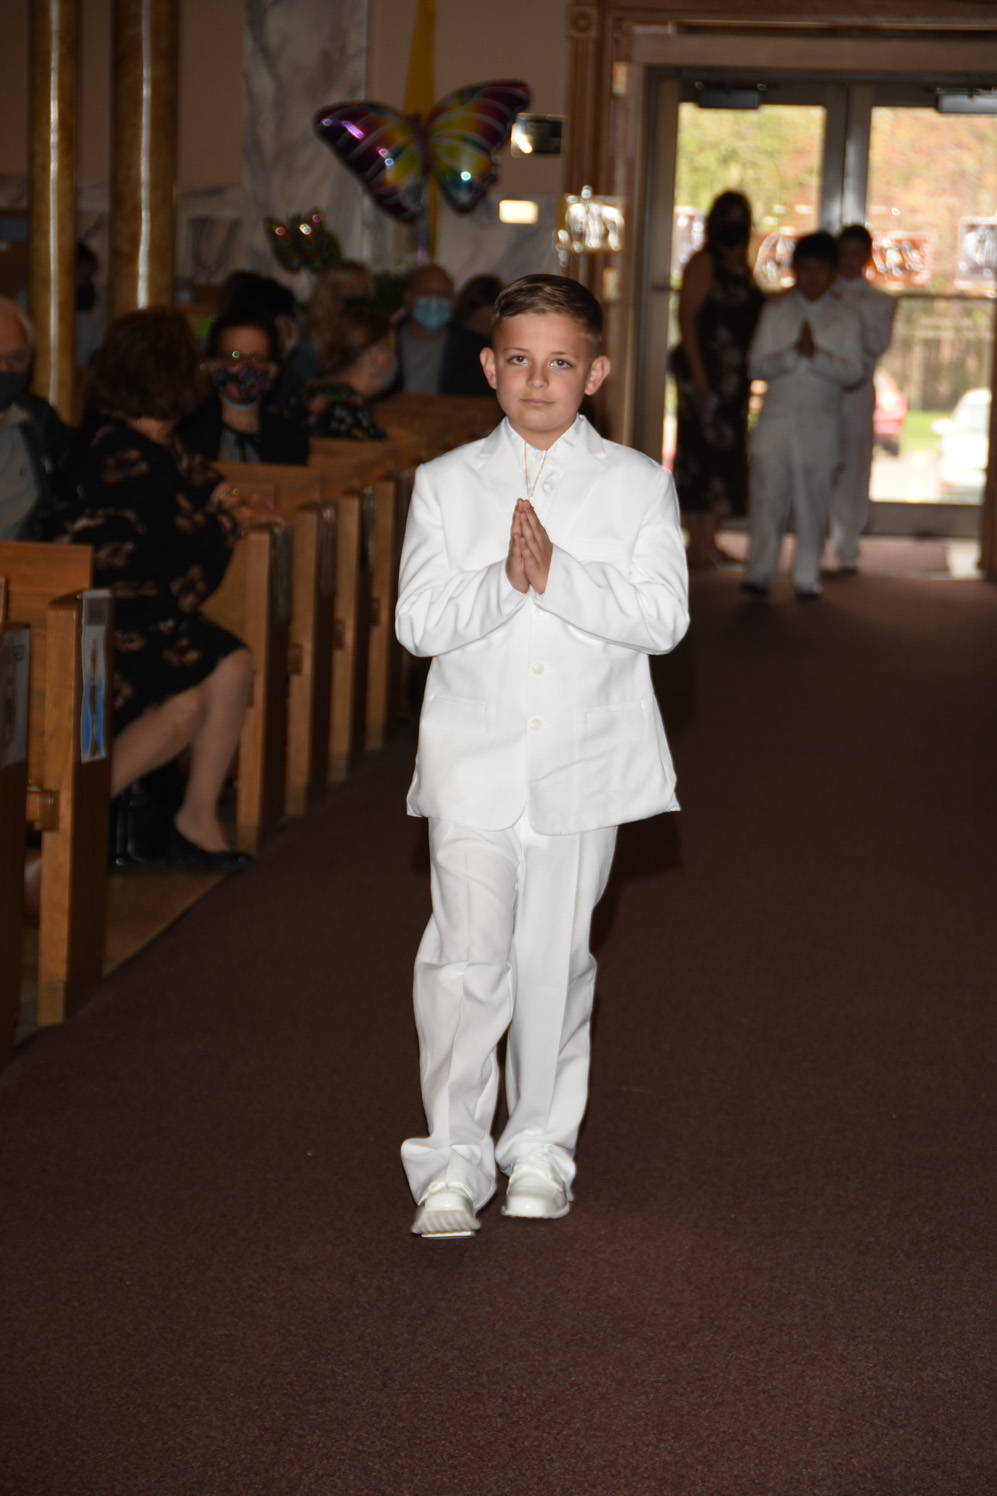 FIRST-COMMUNION-MAY-2-2021-1001001034